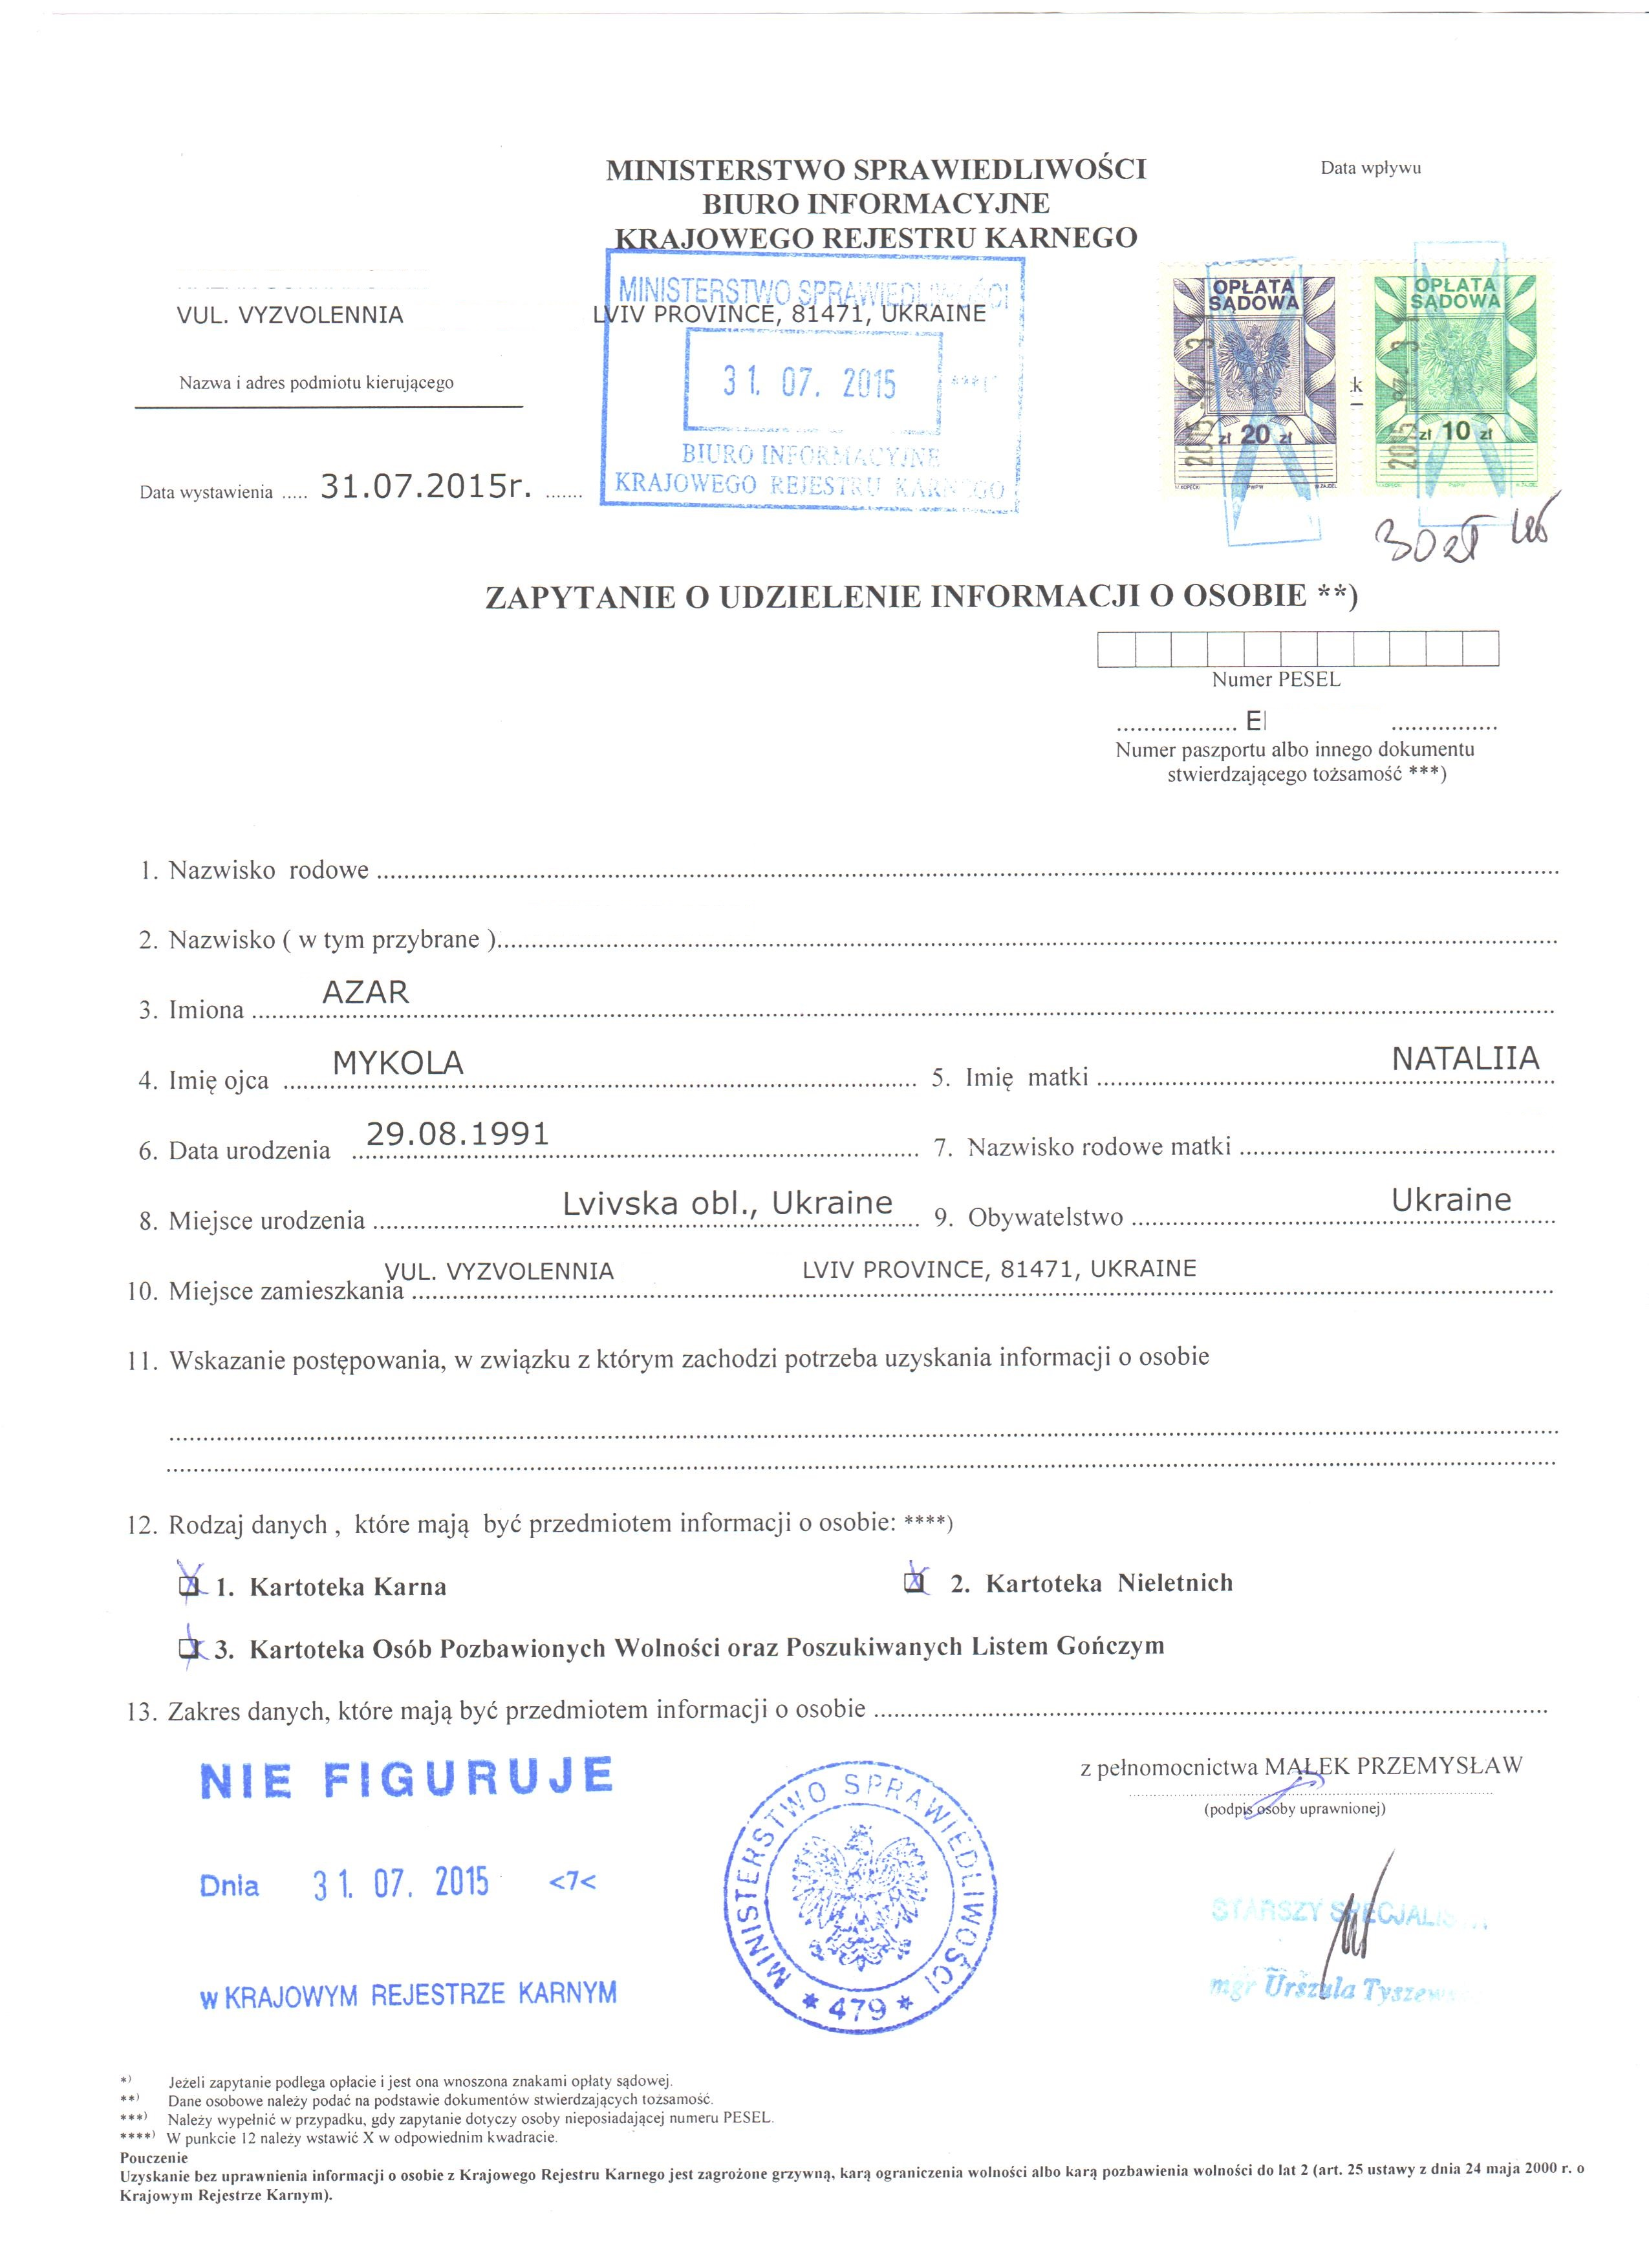 Police clearance certificate from Poland